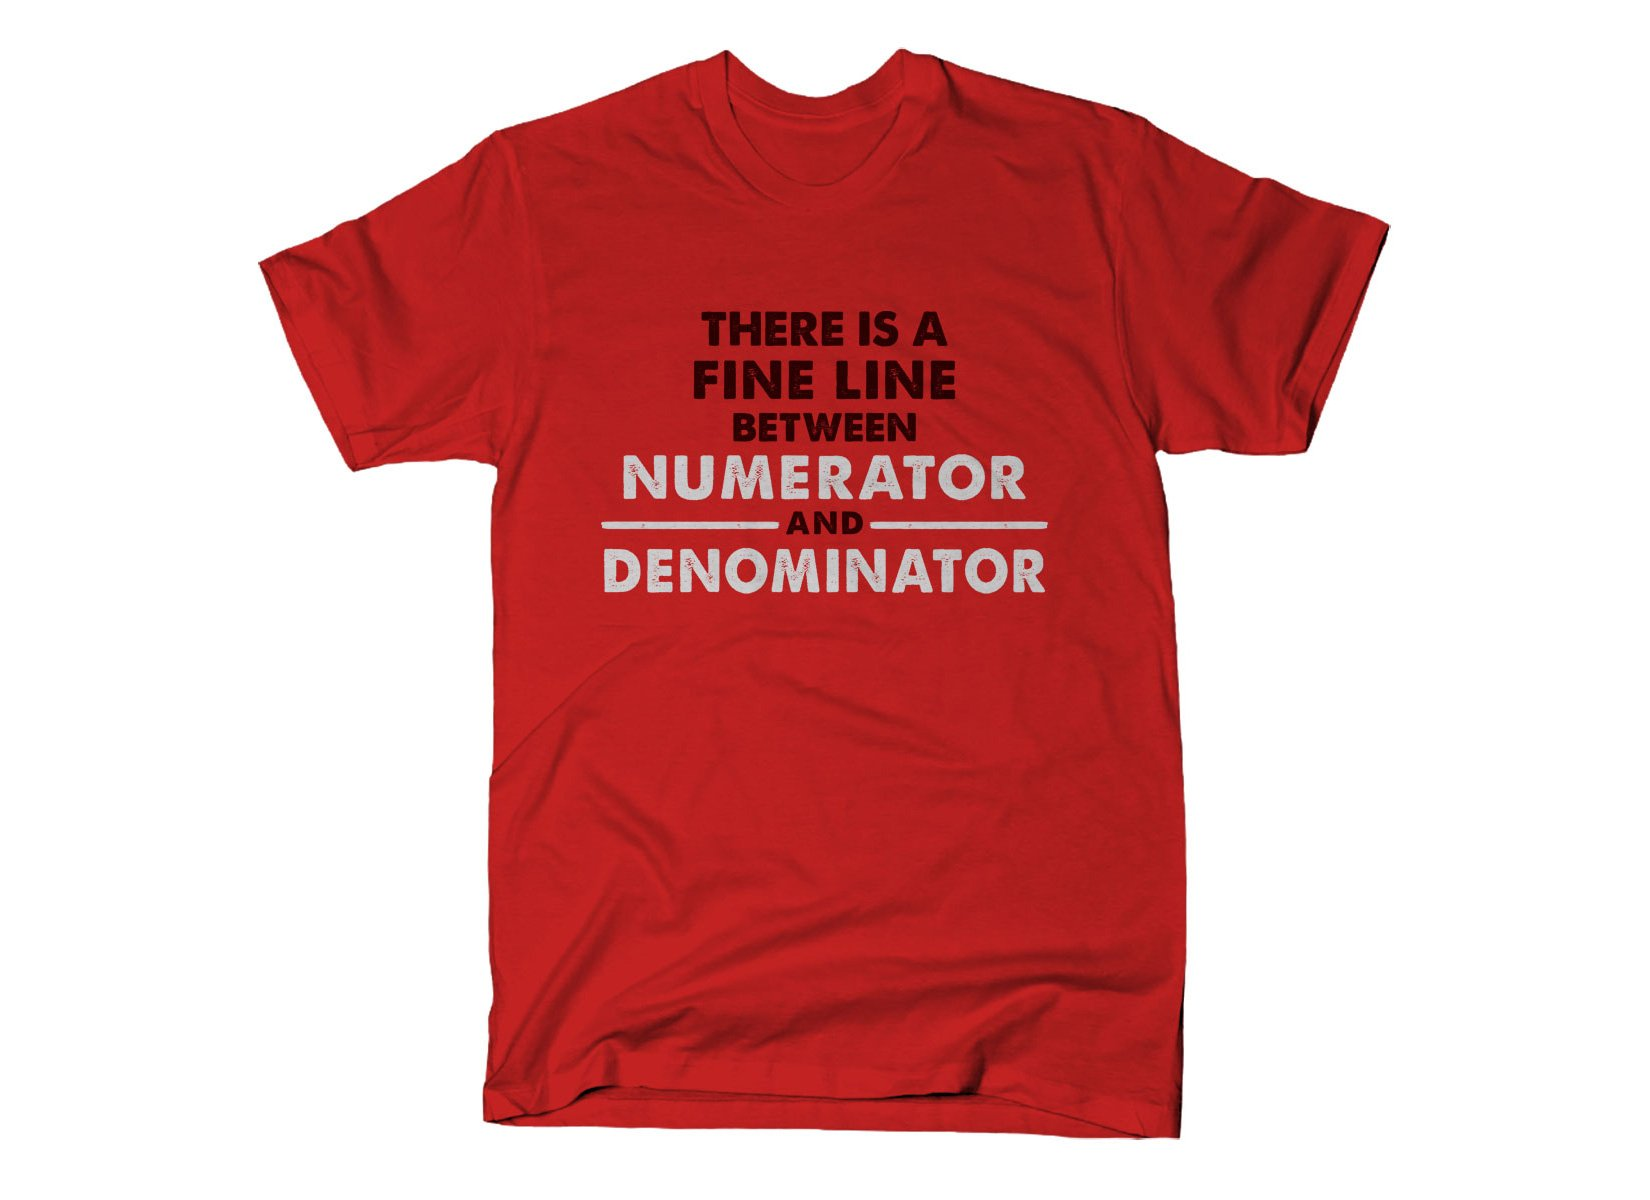 There Is A Fine Line Between Numerator And Denominator on Mens T-Shirt